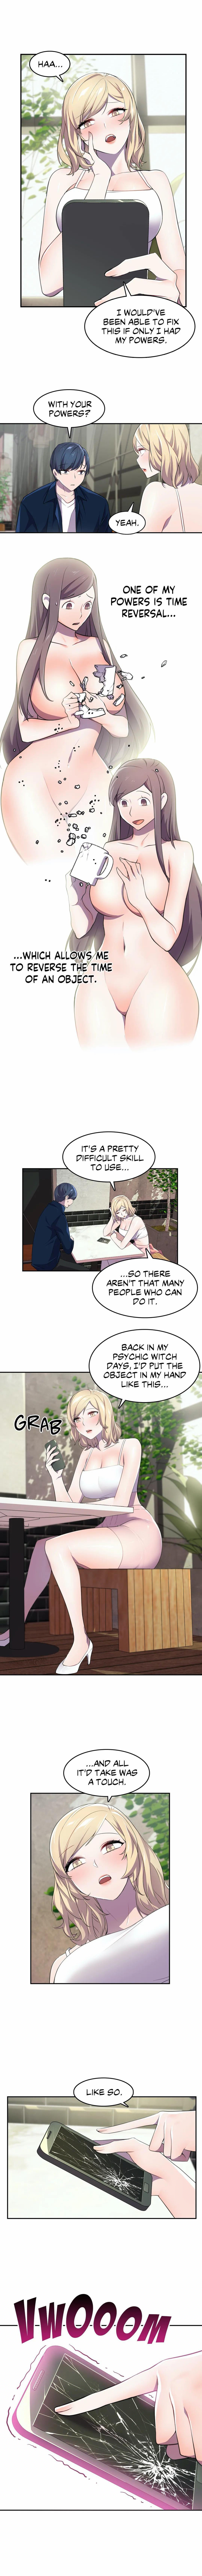 HERO MANAGER Ch. 1-11 44